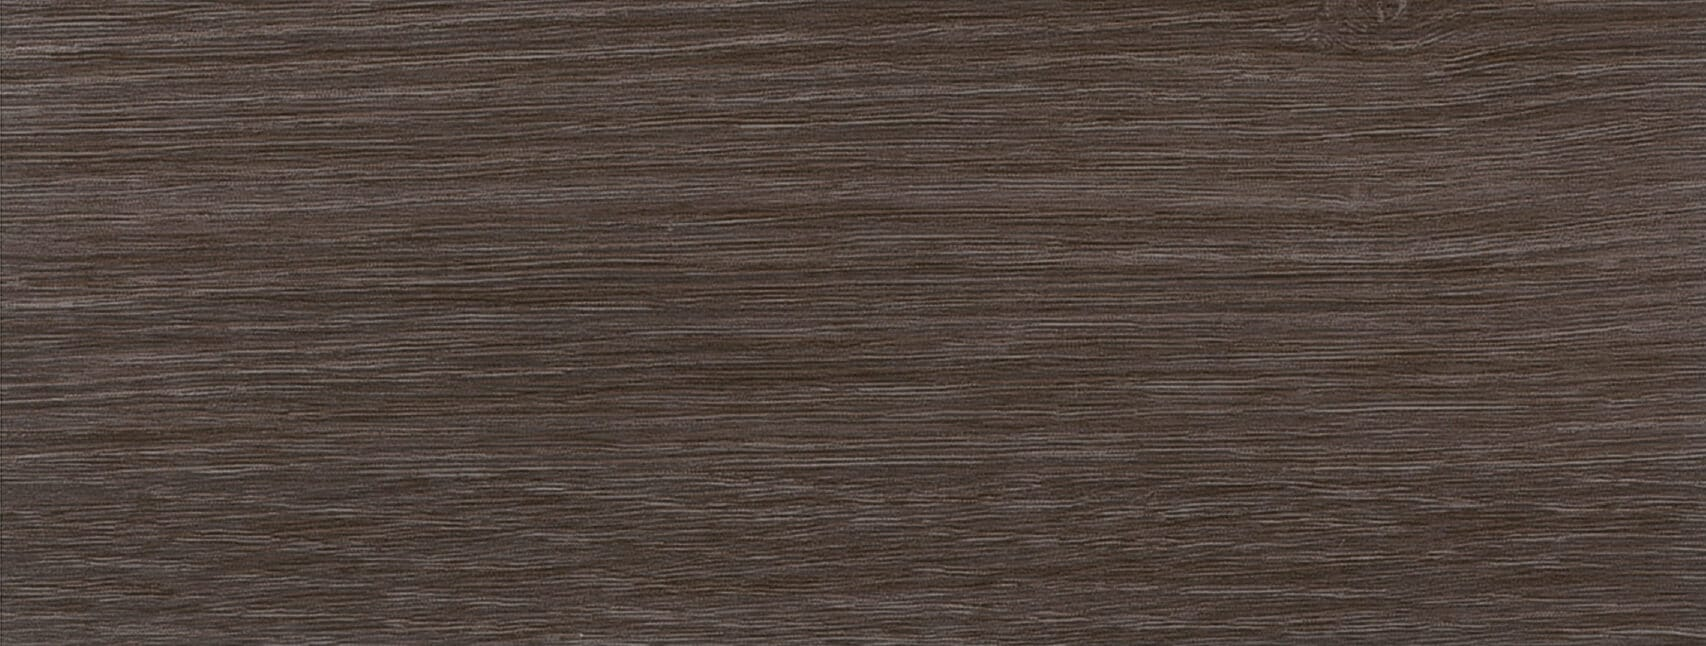 Sheffield oak brown 0OB